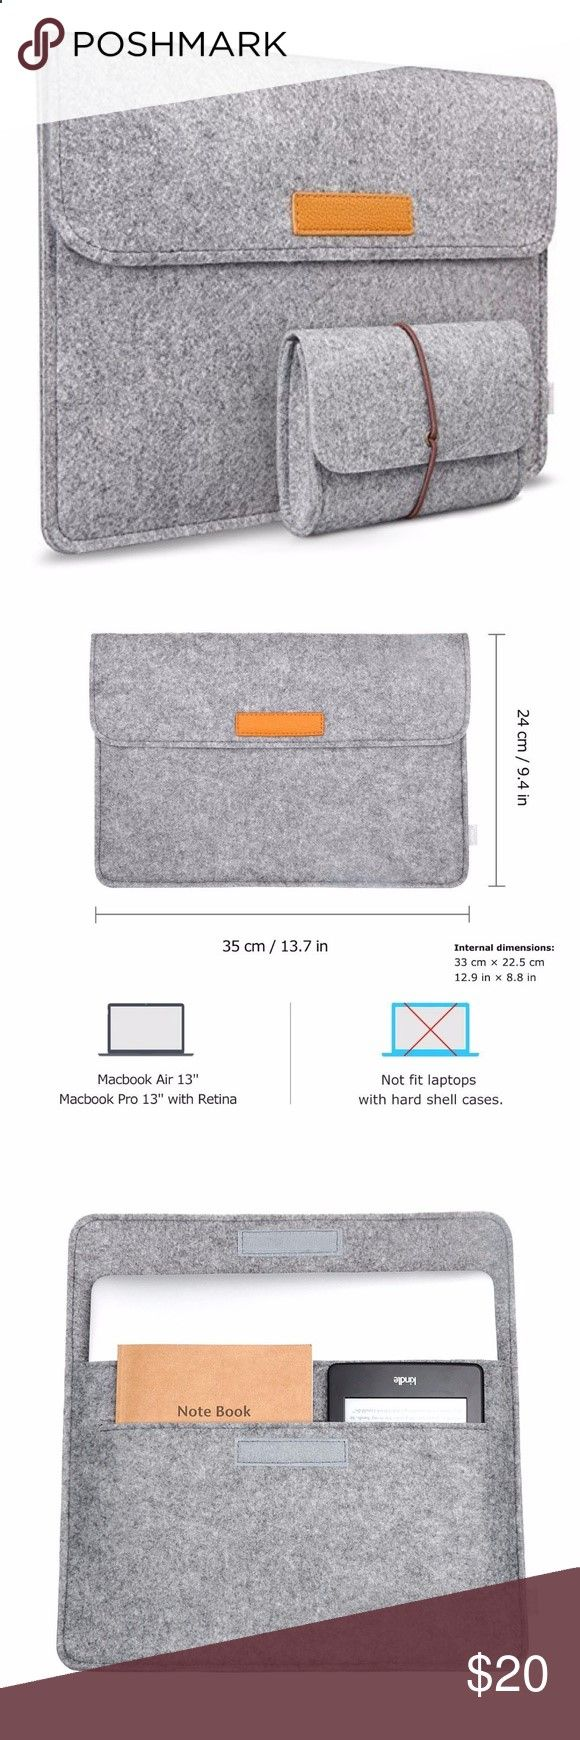 Ultrabook Laptops - 13-13.3 Inch MacBook Air Cover Protector Case Internal dimensions: 12.9 x 8.8 External dimensions: 13.7 x 9.4. Fit for 12.9 Inch Apple iPad Pro 2015 Model, 13.3 Inch MacBook Pro Retina(A1425/A1437/A1502), MacBook Air 13.3(A1369/A1406/A1466/A1496/A1181), Dell XPS 13 and most 11-Inch Ultrabook Laptop One main compartment for laptop and second compartment for magazines, books, tablet, etc.; Two back pockets lined with flannel for cellphone, earphones, wallet, etc. Addi...